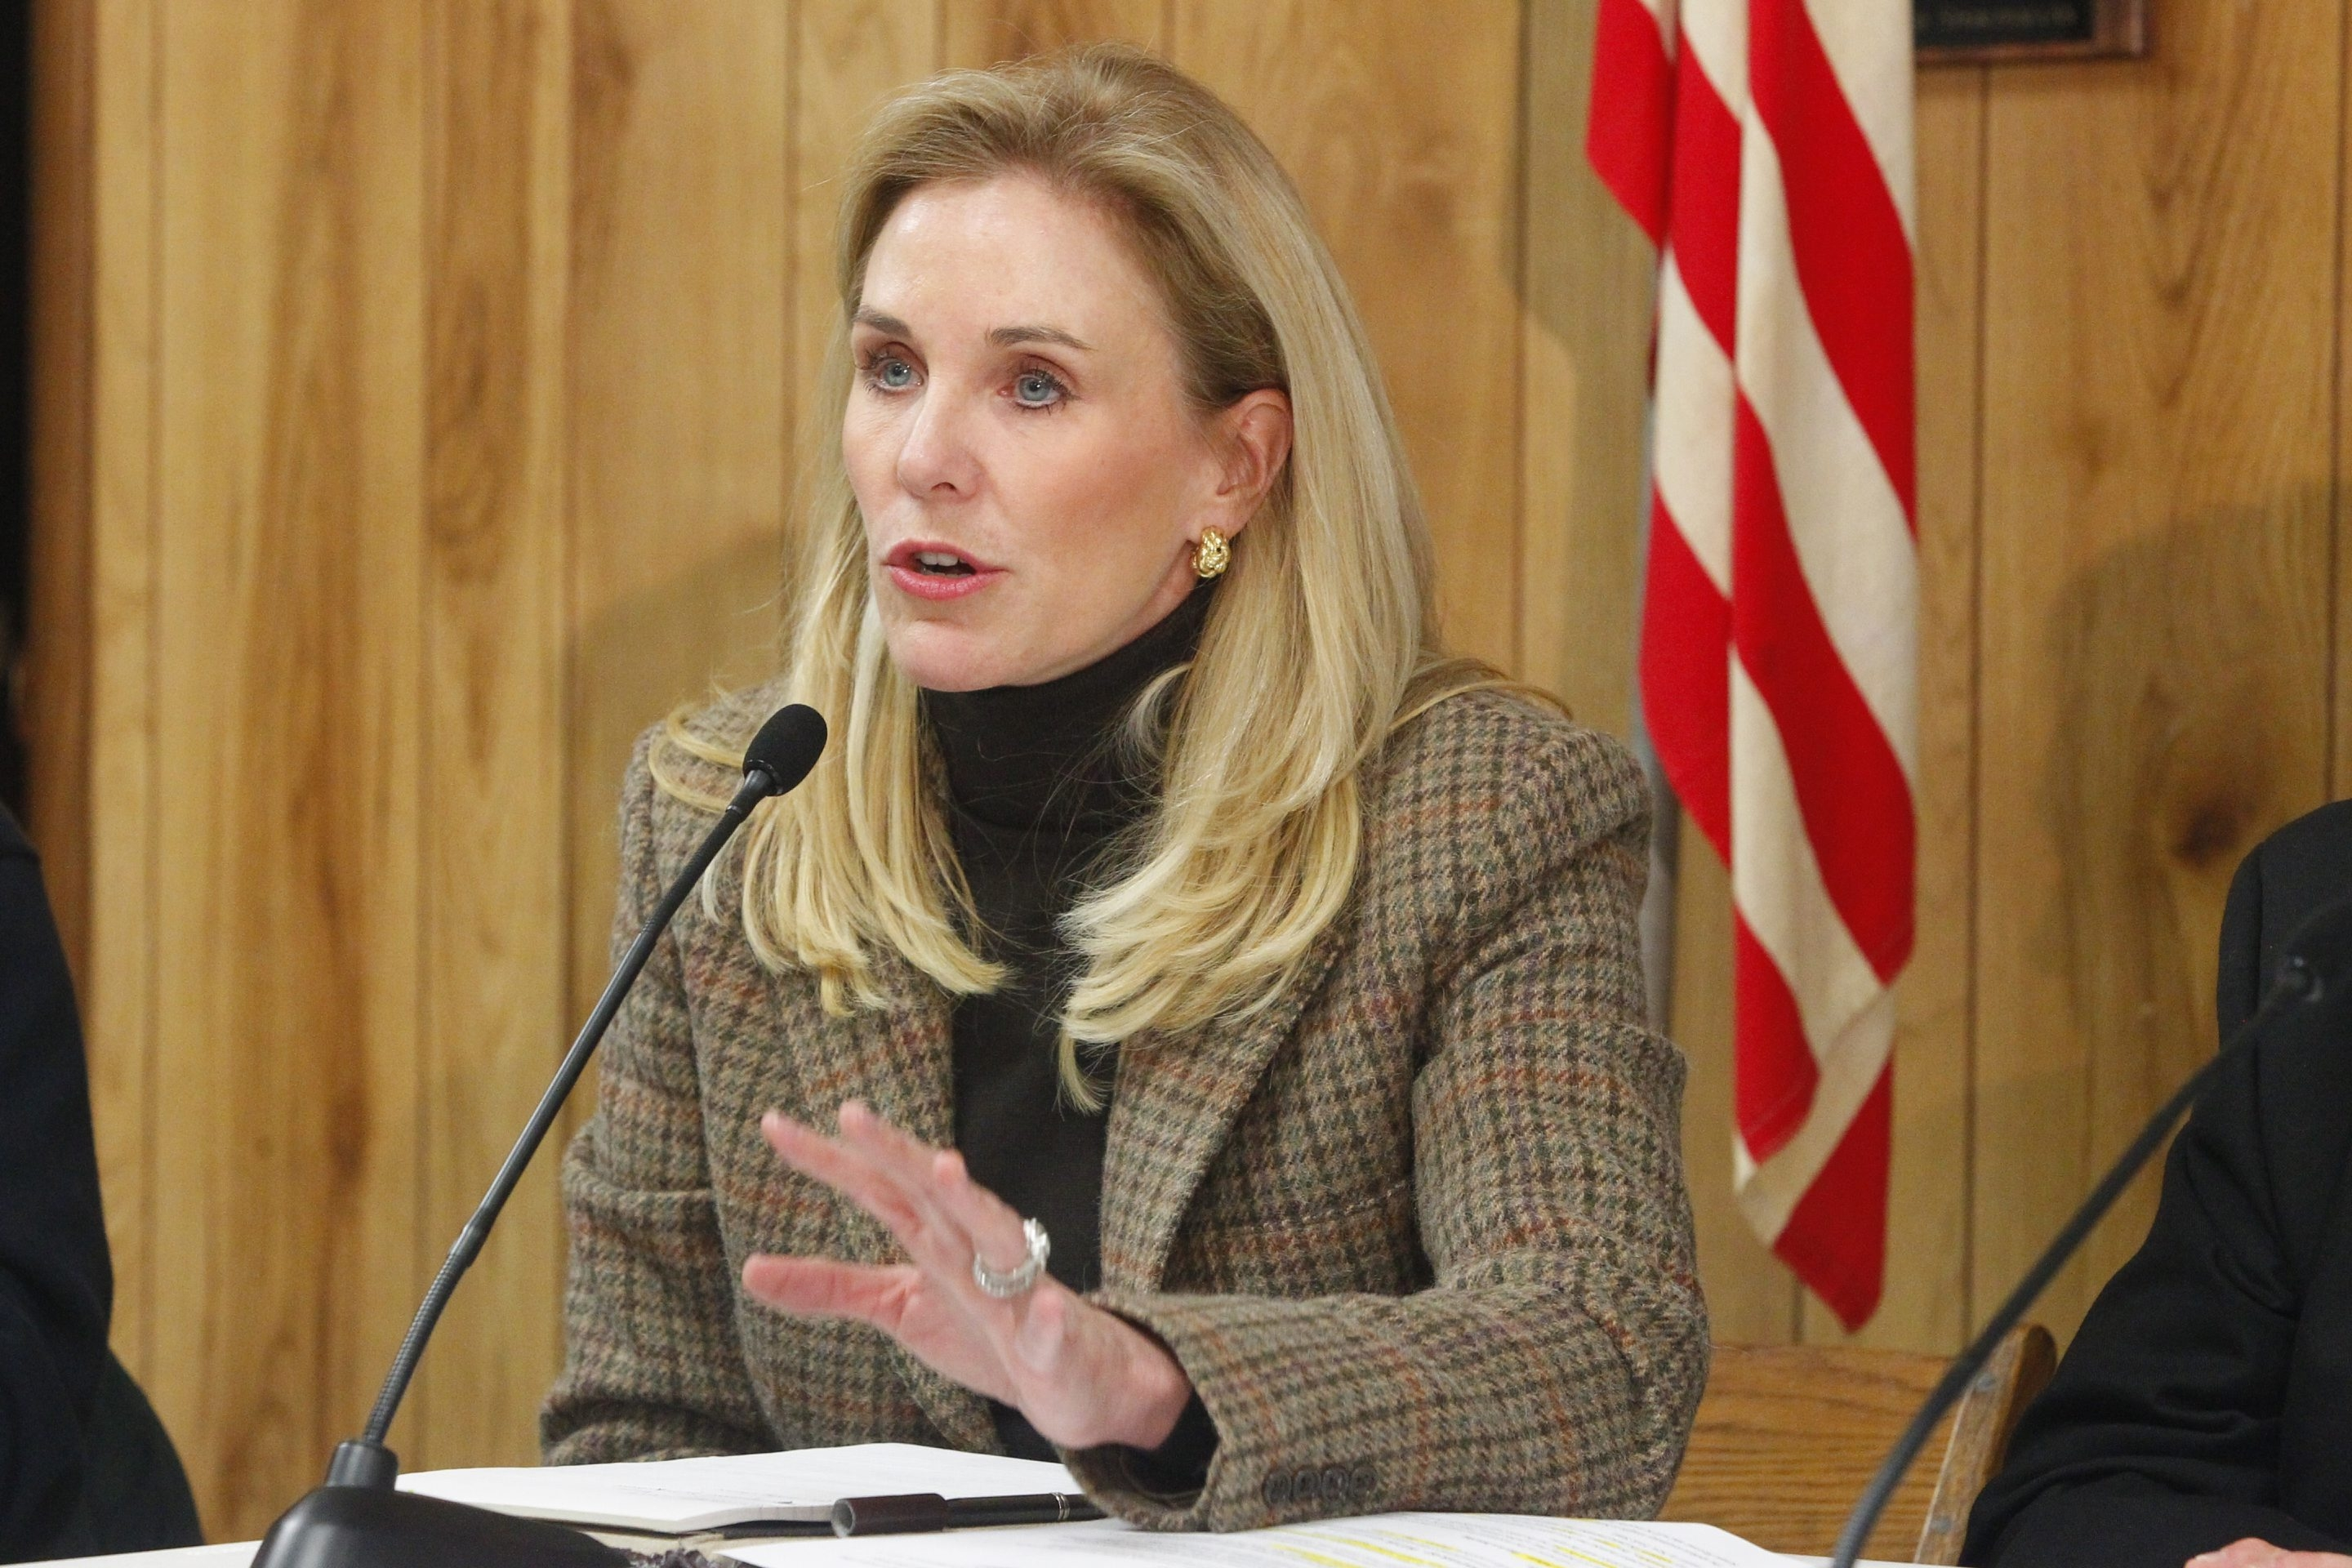 Assemblywoman Jane L. Corwin, R-Clarence, has household net worth estimated at $40.1 million to $74.6 million, analysis shows.